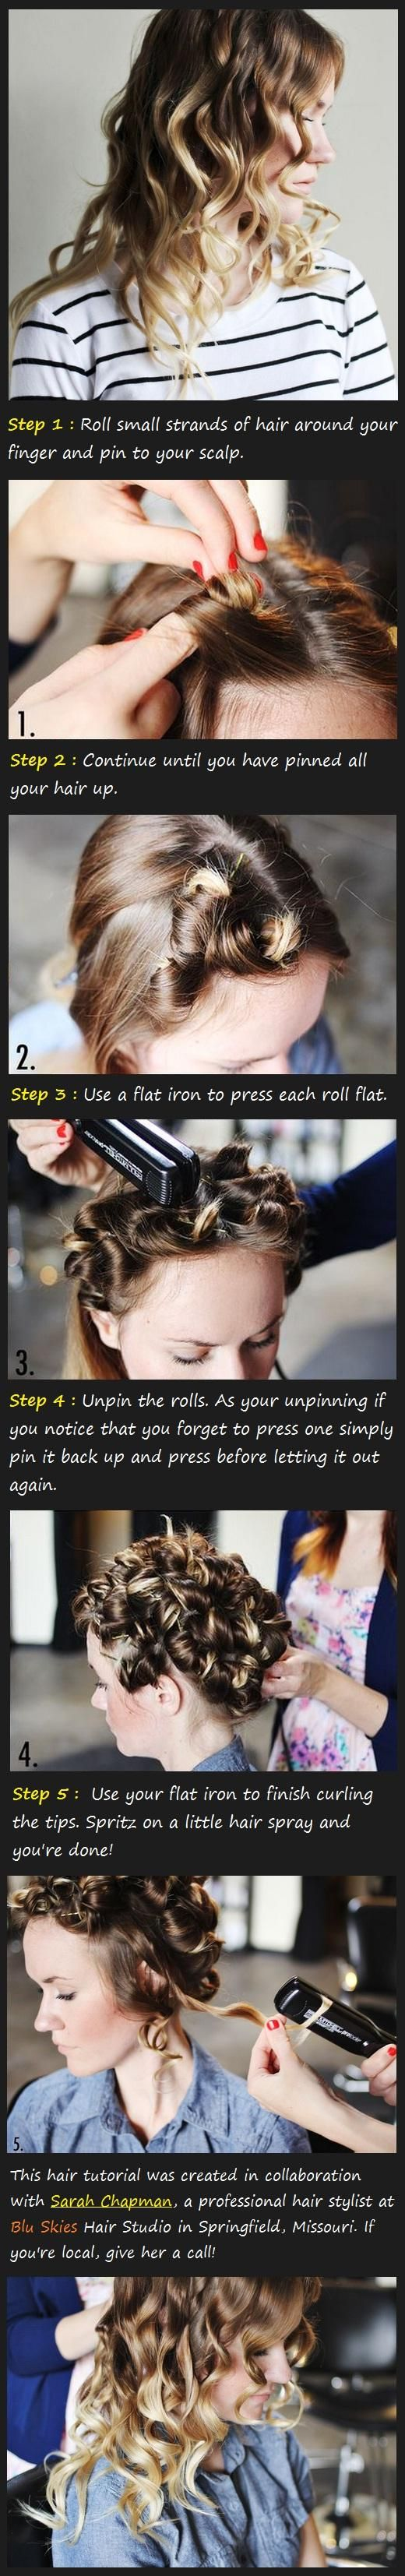 Flat Iron Curls Tutorial  This is a must see! These curls will last!